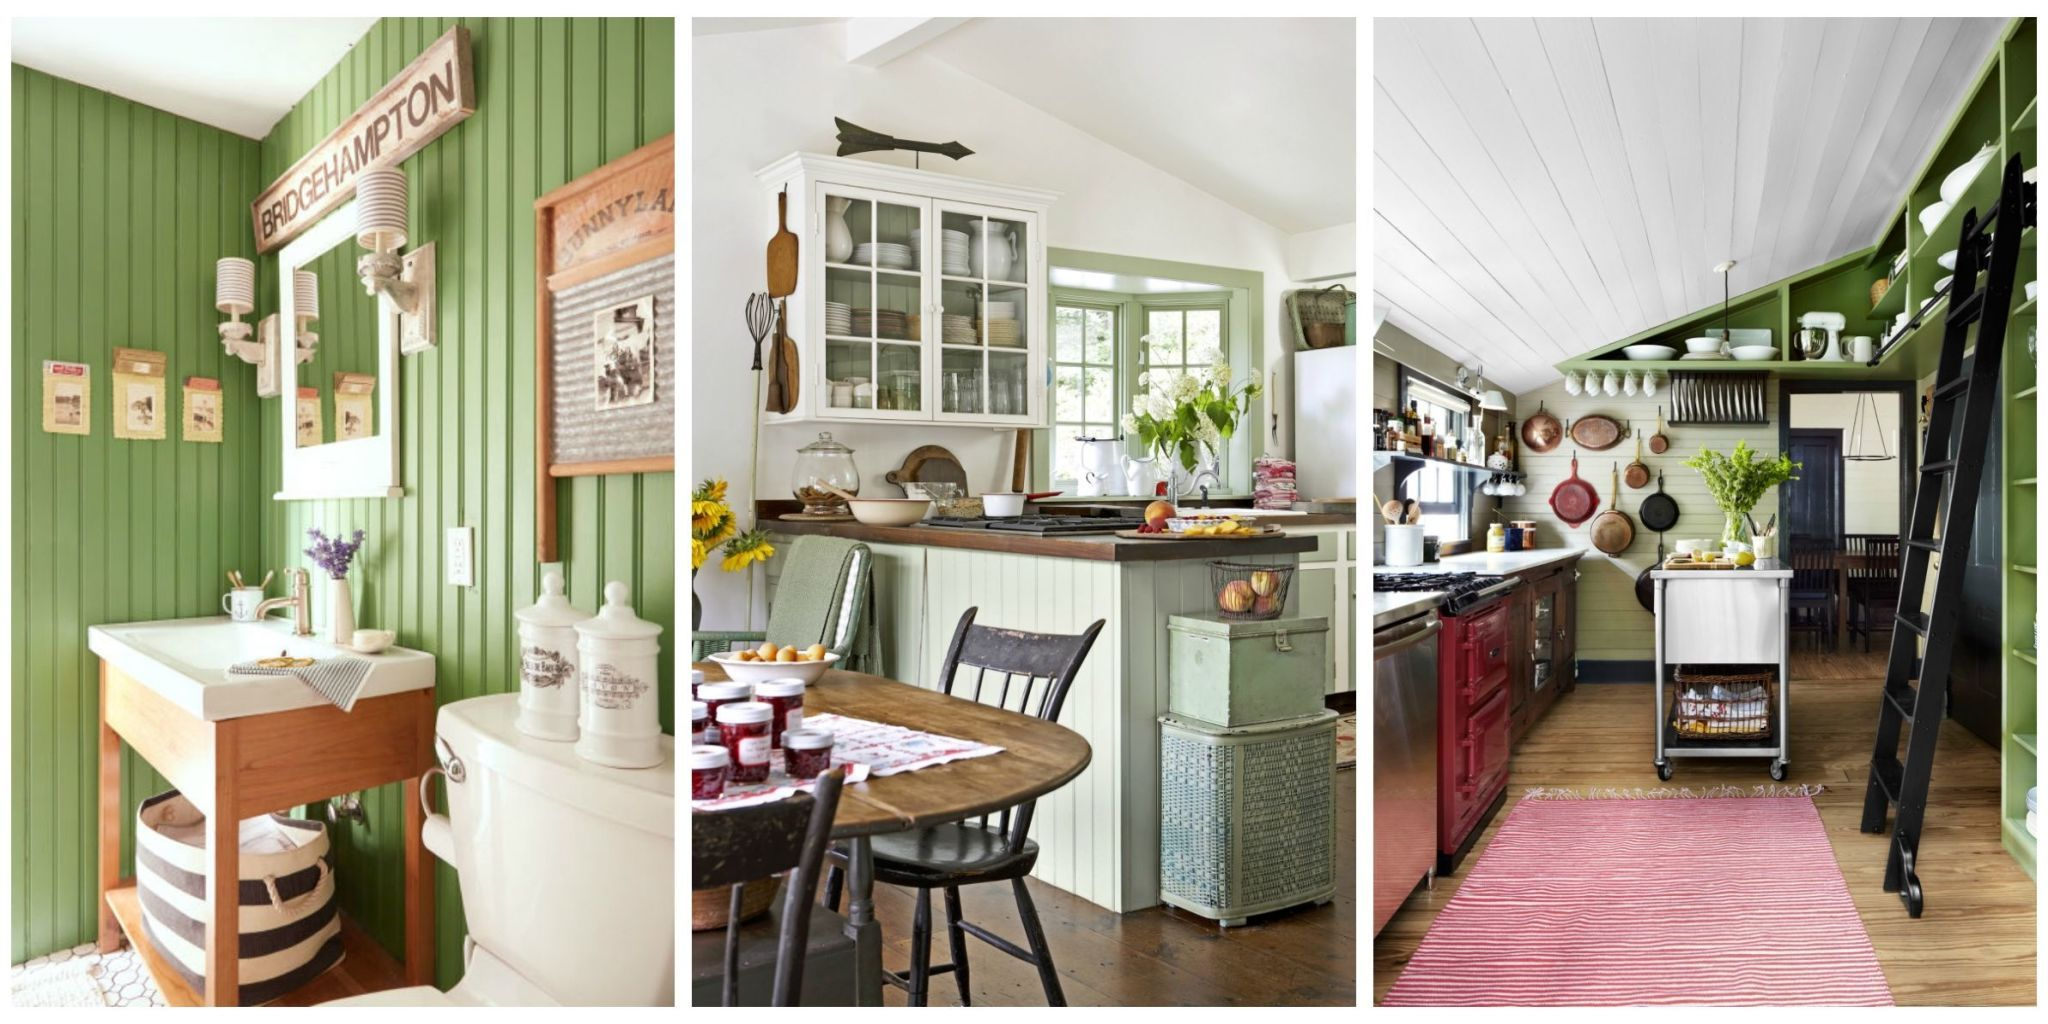 From Kelly To Kiwi, Decorating With Green Has Never Been Easier With Our  Decorating Tips And Ideas.